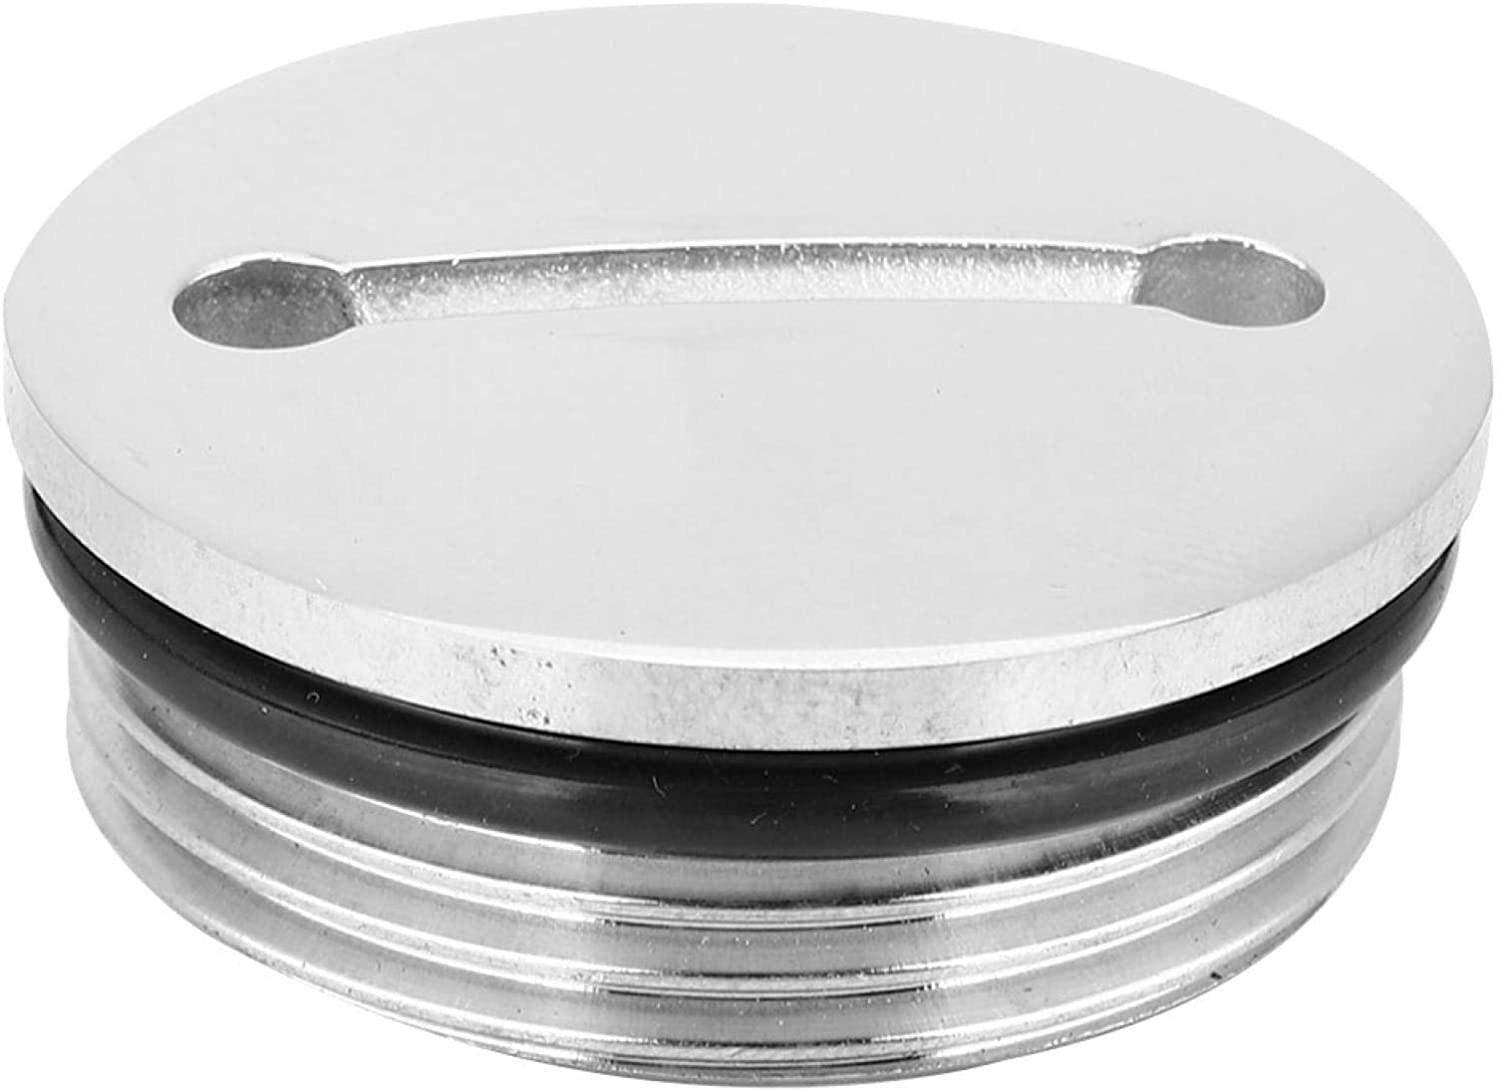 Gas Cap Manufacturer regenerated product Boat Fuel Tank 316 Stainless Marine Fixed price for sale Steel Polished